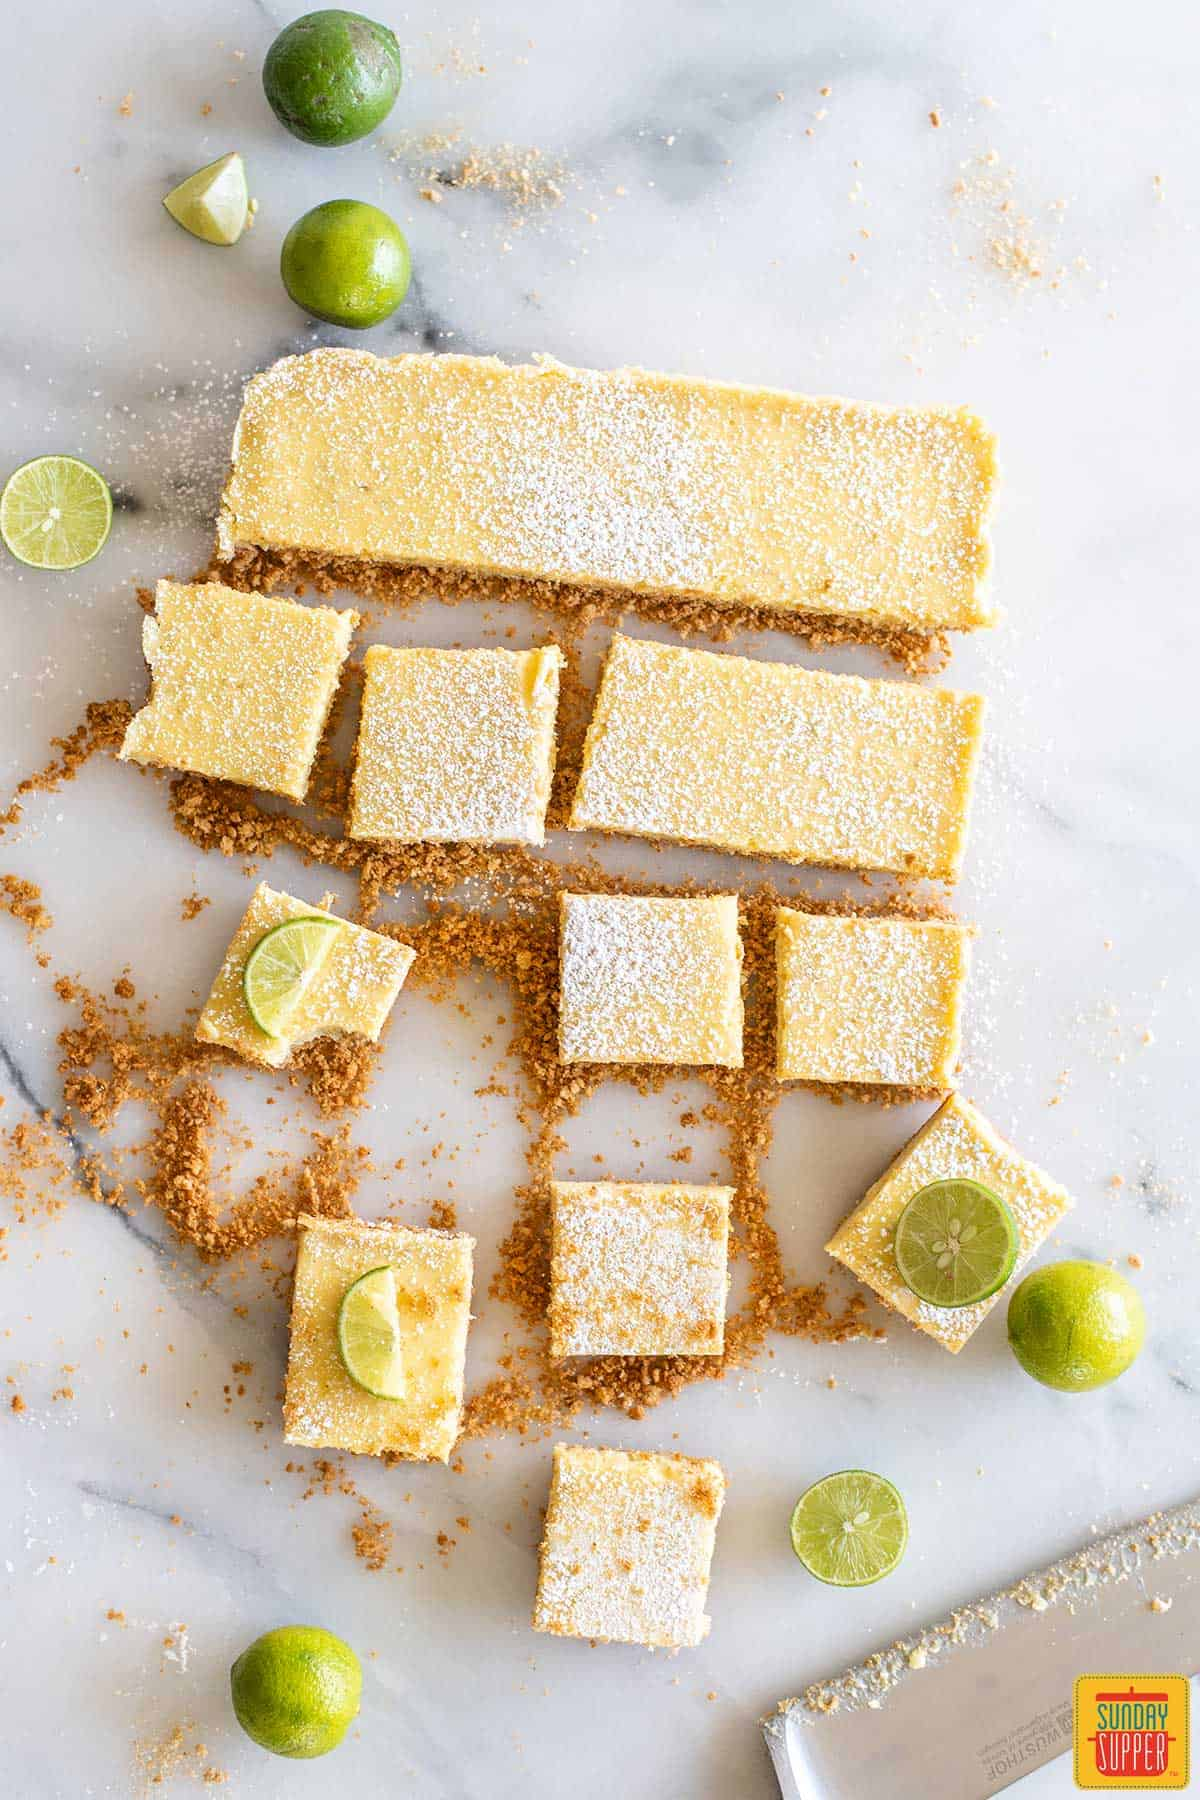 Key lime bars cut into slices next to the remaining uncut pieces of key lime pie